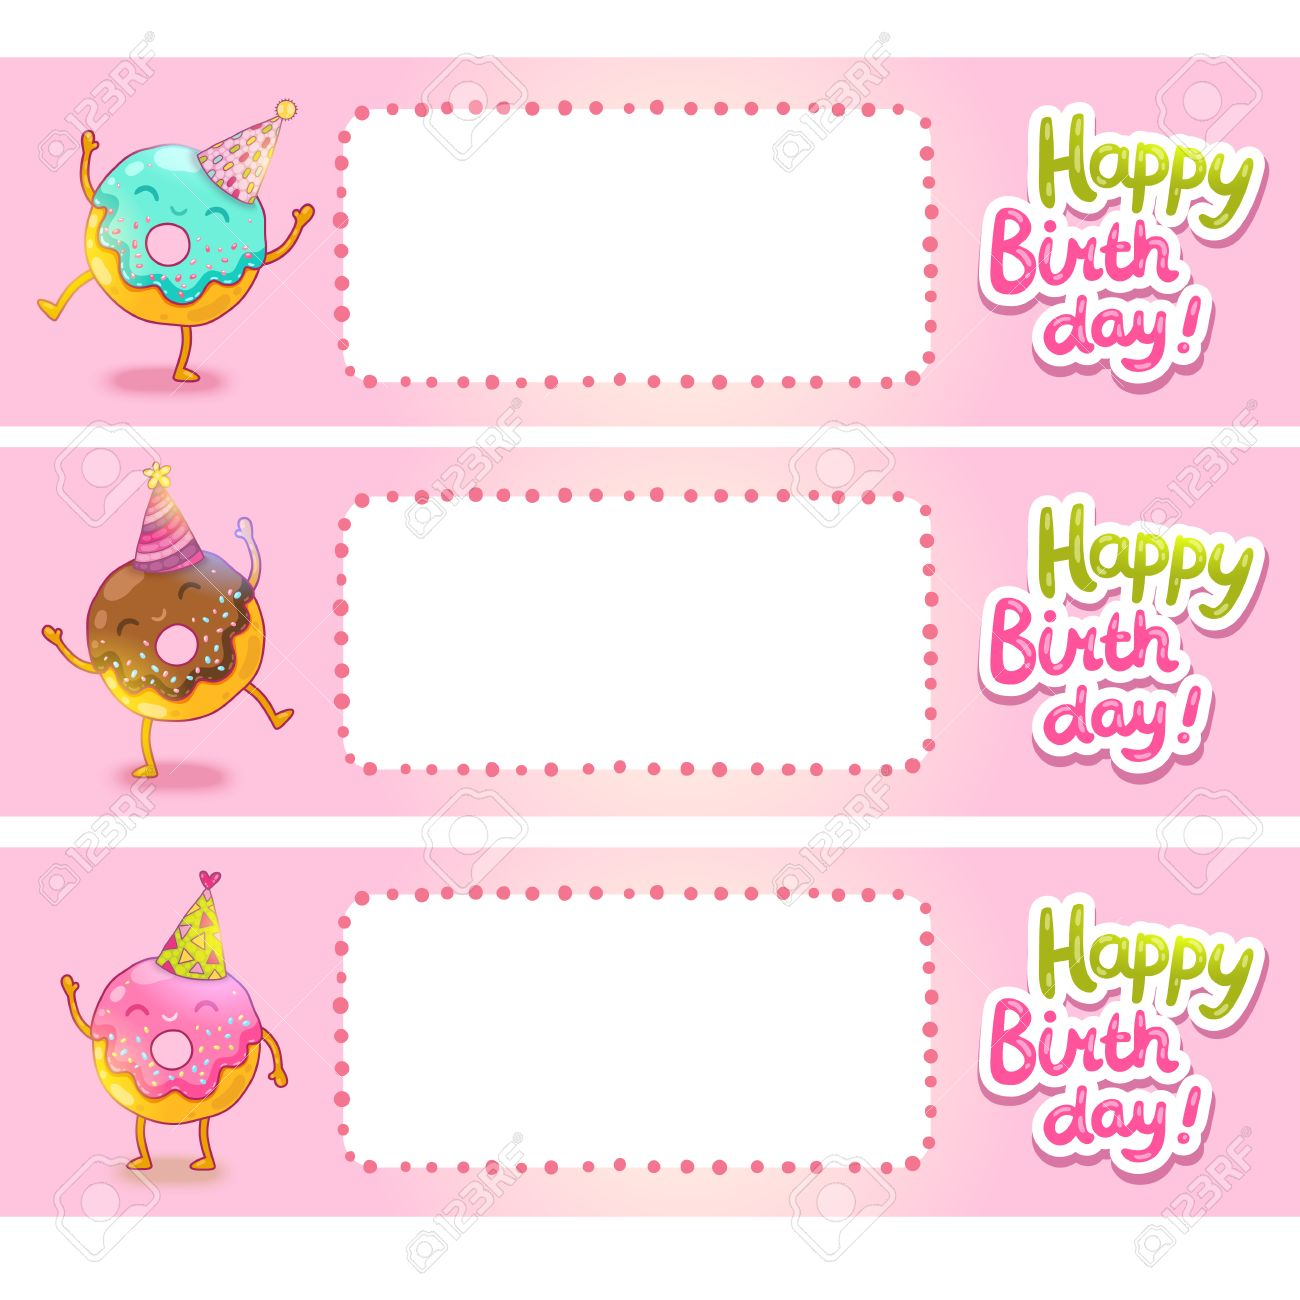 happy birthday sticker template ; 27710629-happy-birthday-card-background-with-cute-donut-vector-holiday-party-template